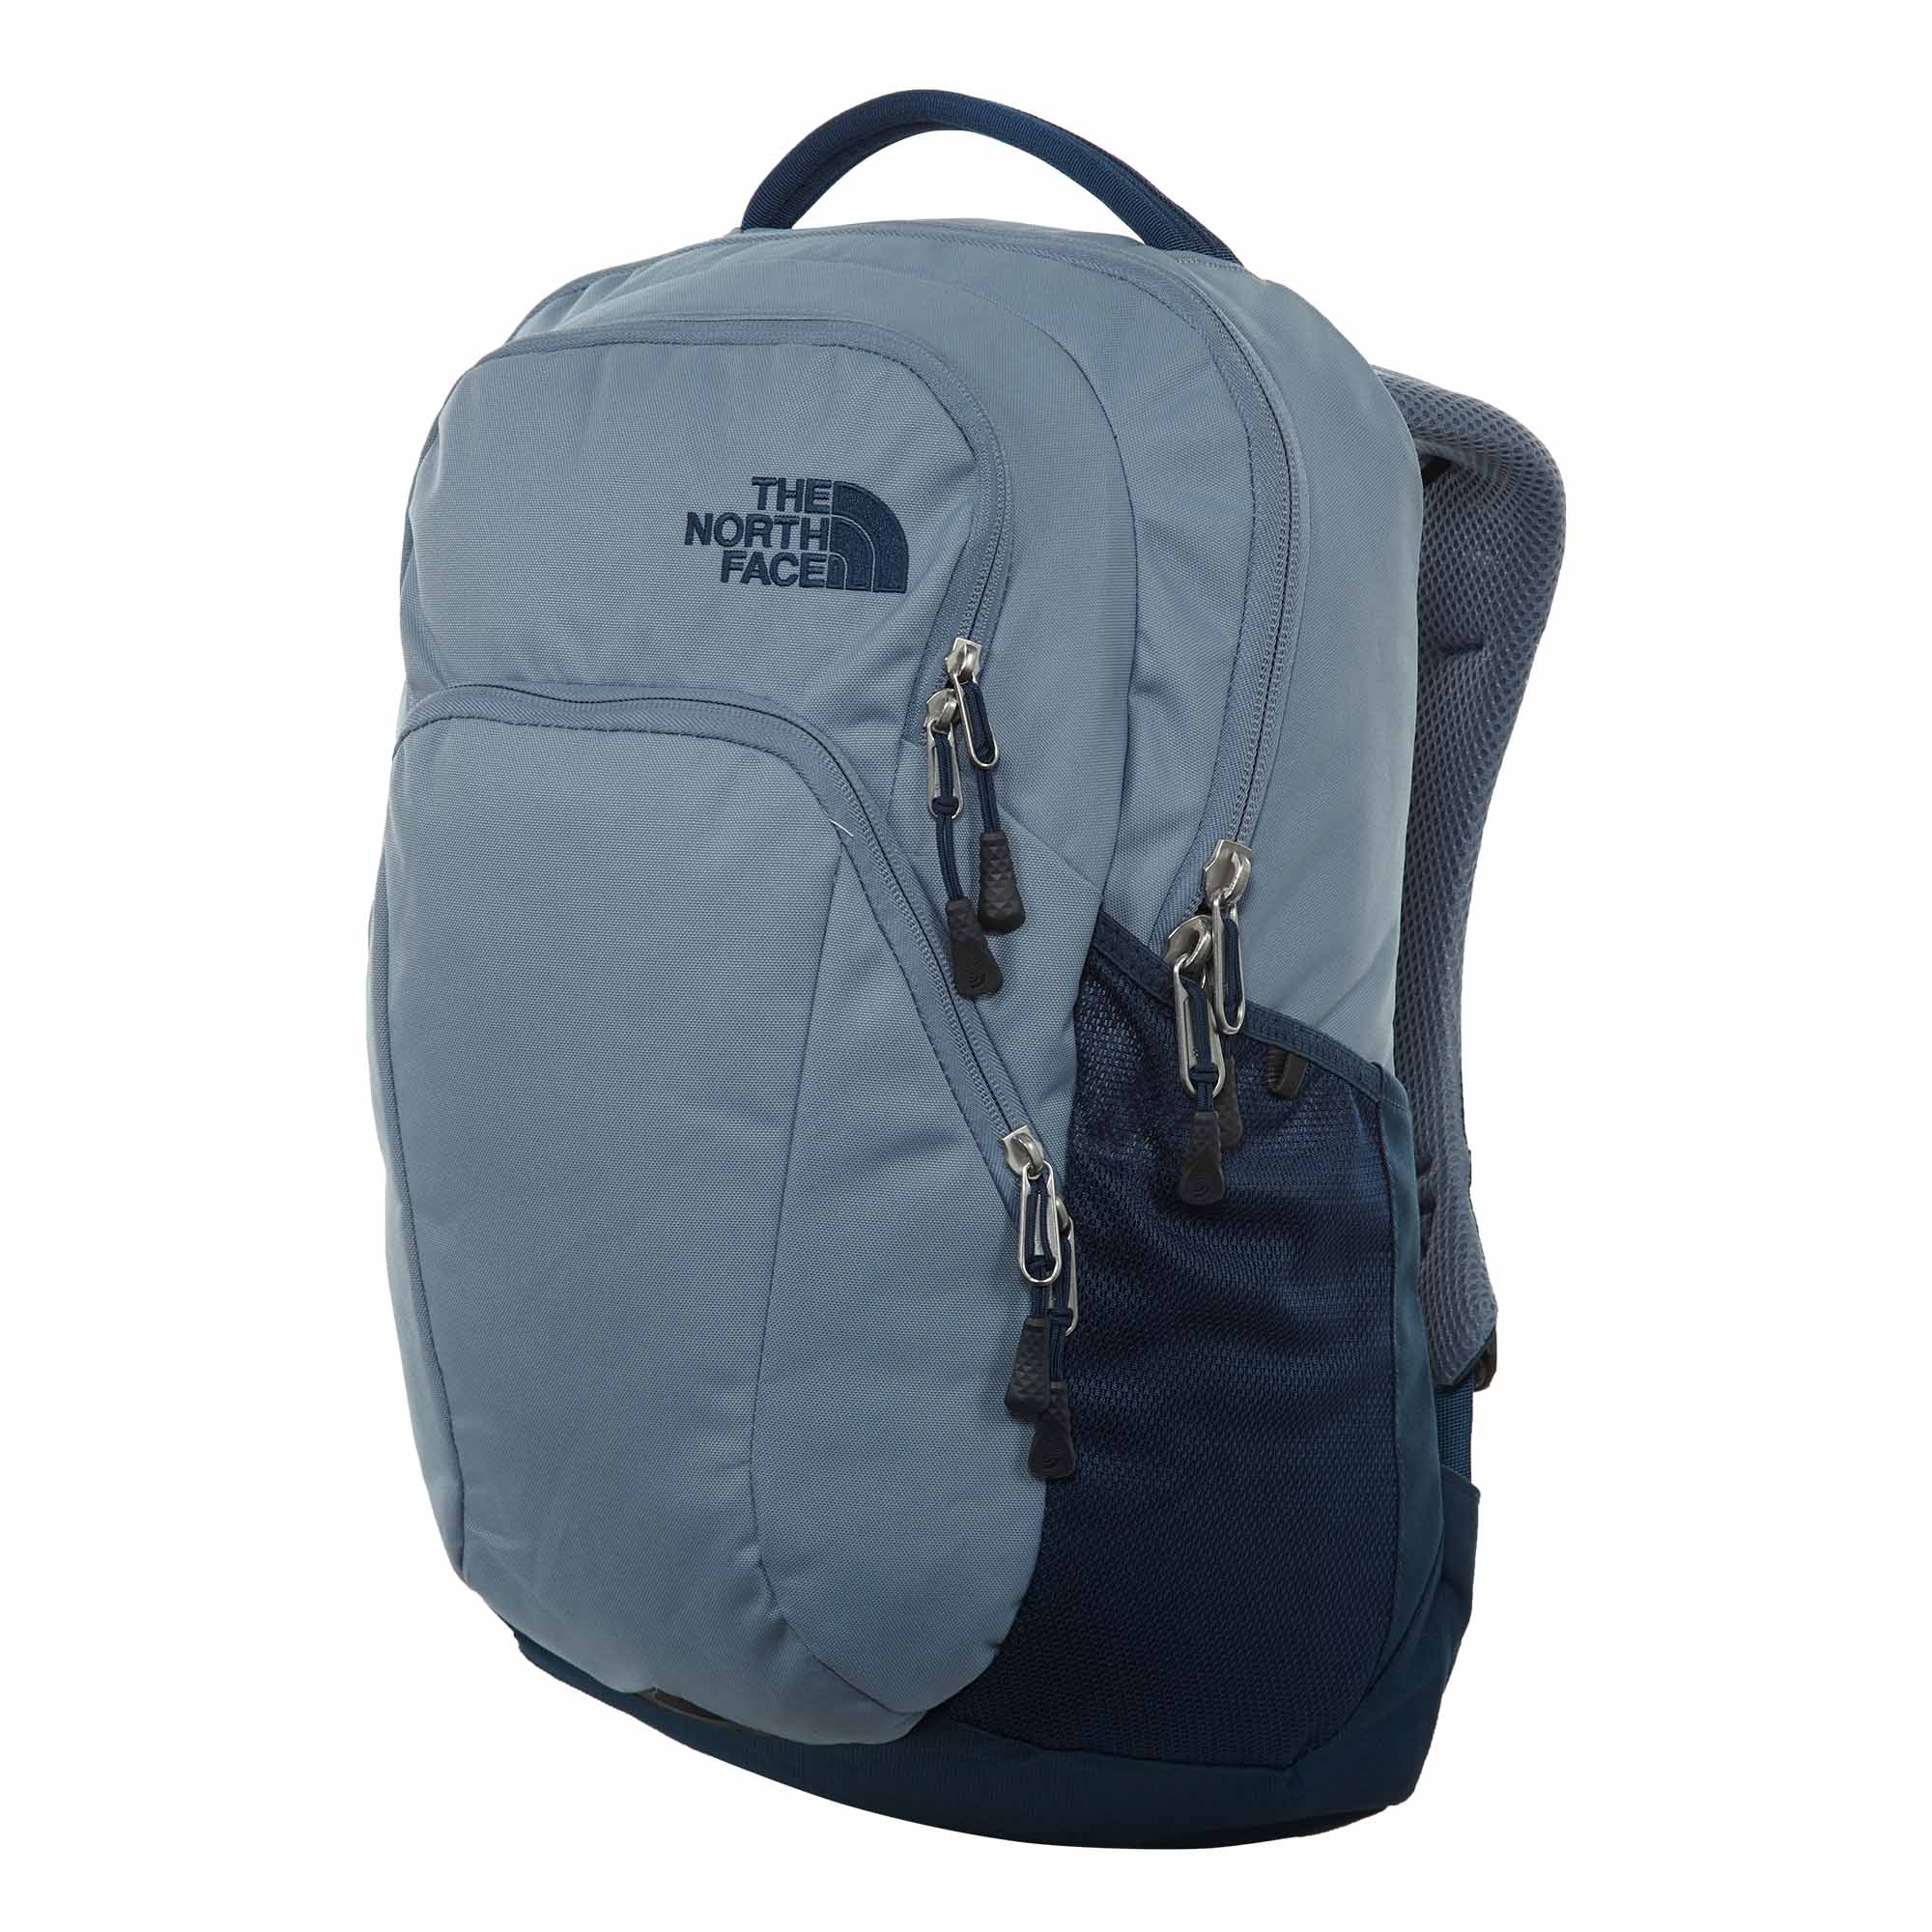 4f4826de34f9 The North Face Womens Pivoter Backpack A3KV6G-5ZG 191929066182